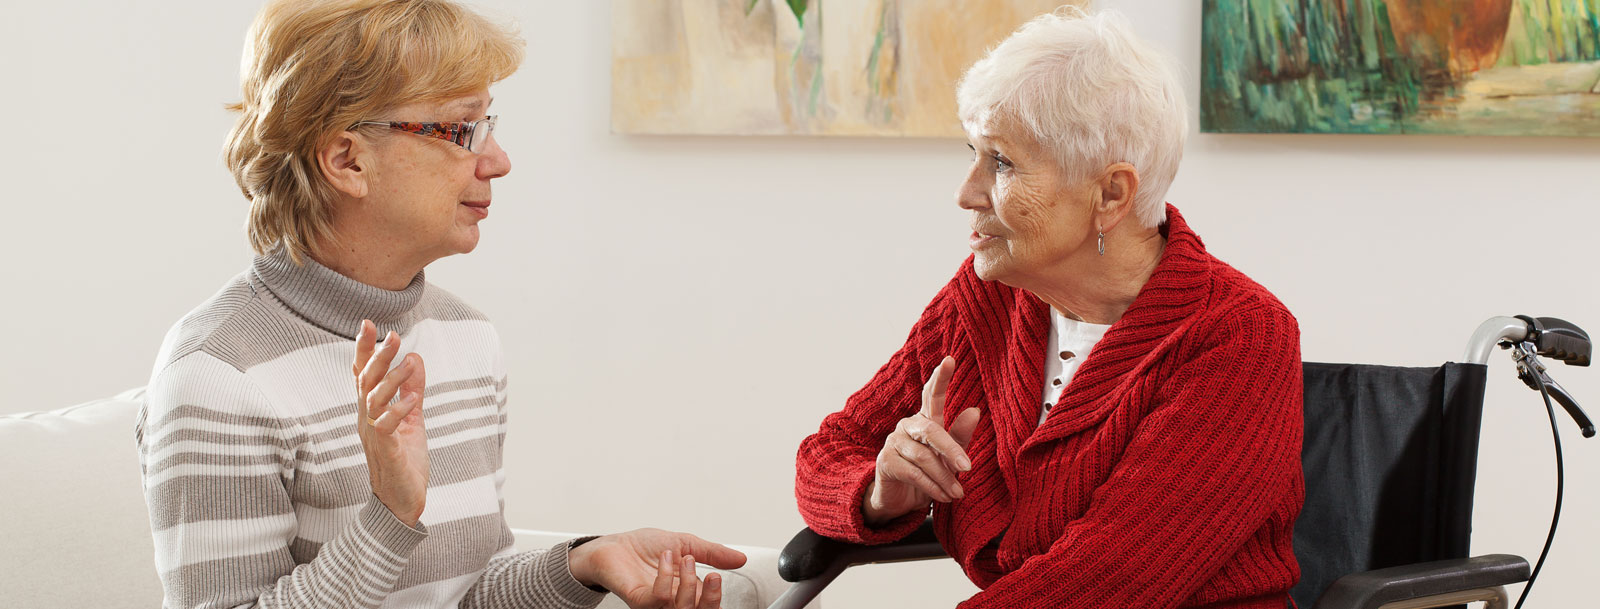 Respite care services at the senior living facility in Wichita